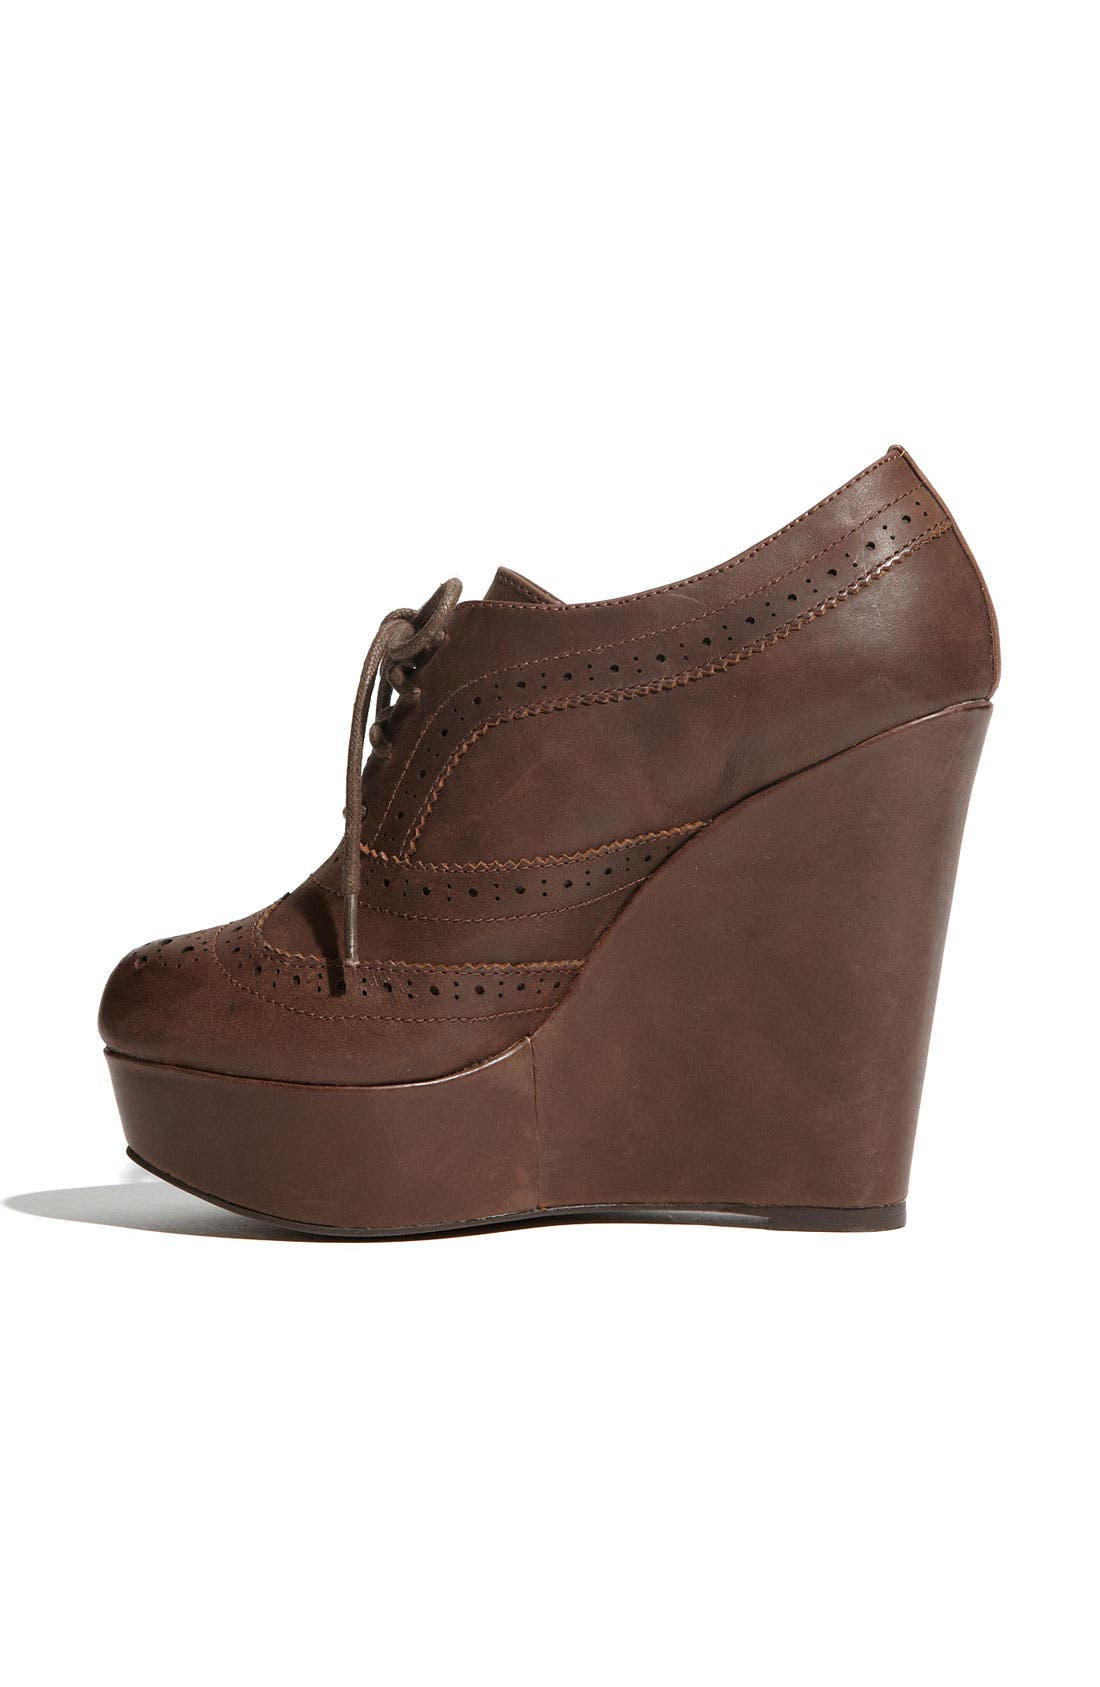 Alternate Image 2  - ALDO 'Horvath' Oxford Wedge